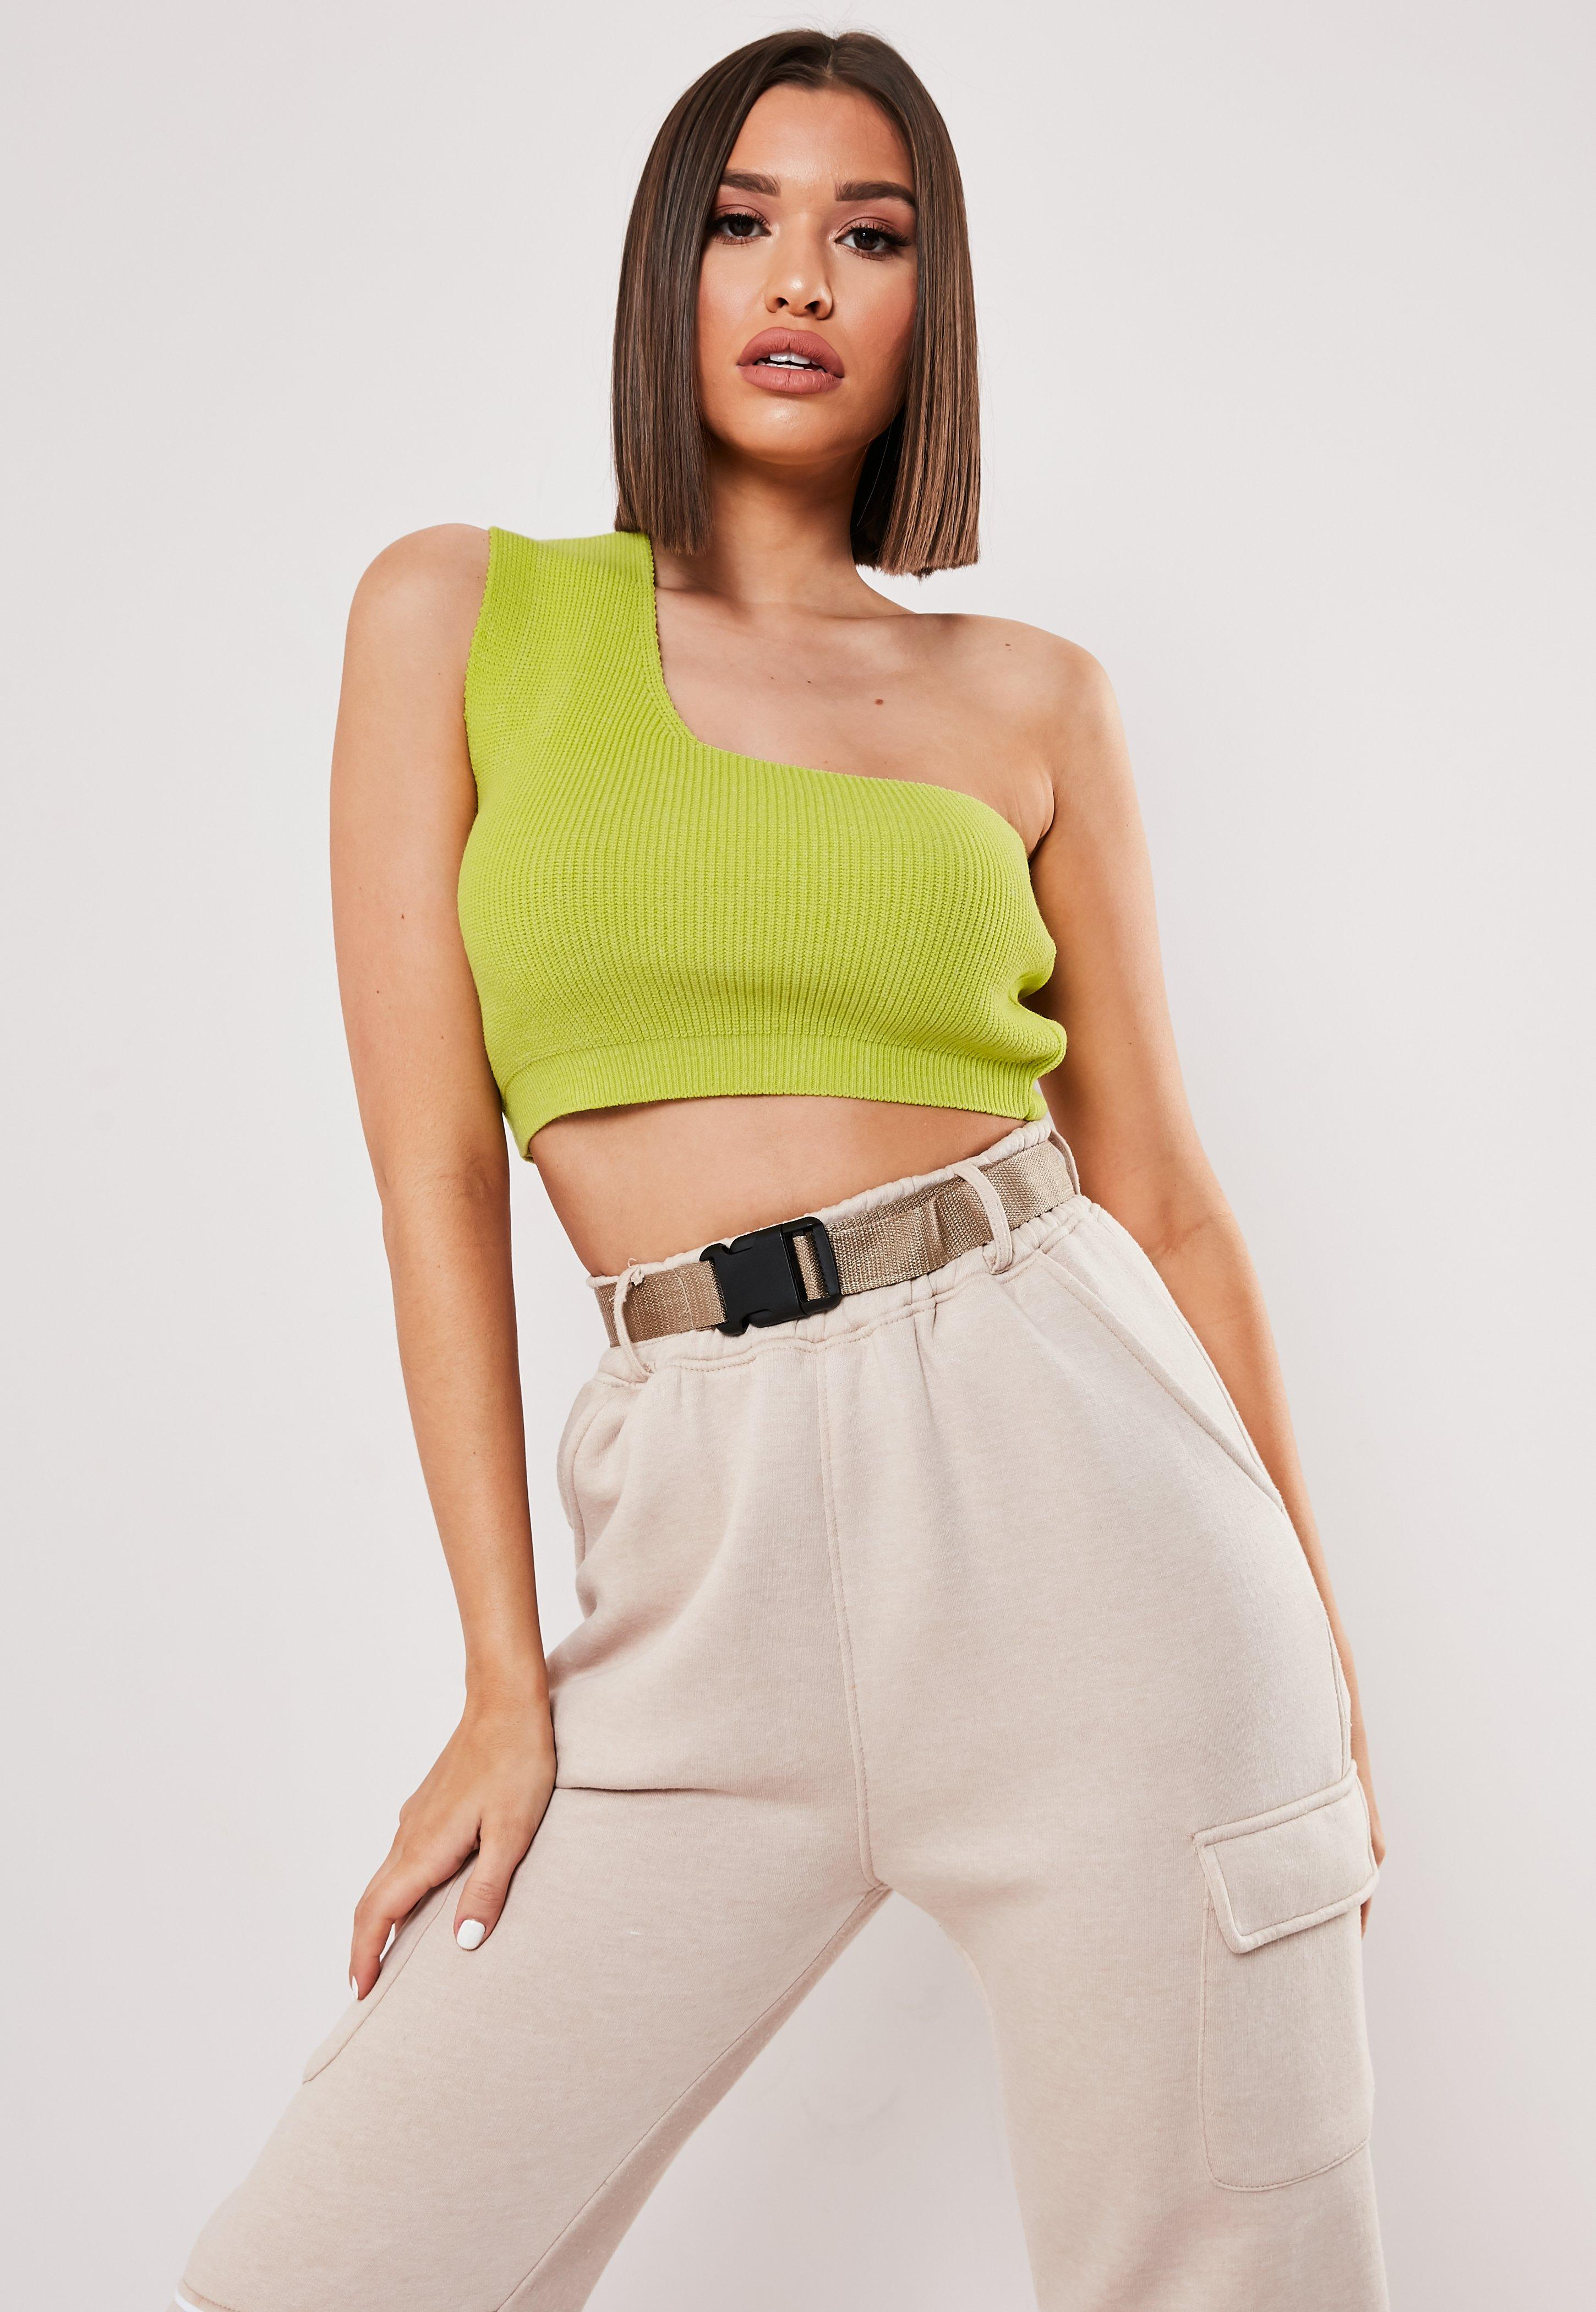 4dfffb6460 Knitwear - Women's Knitted Clothes Online | Missguided